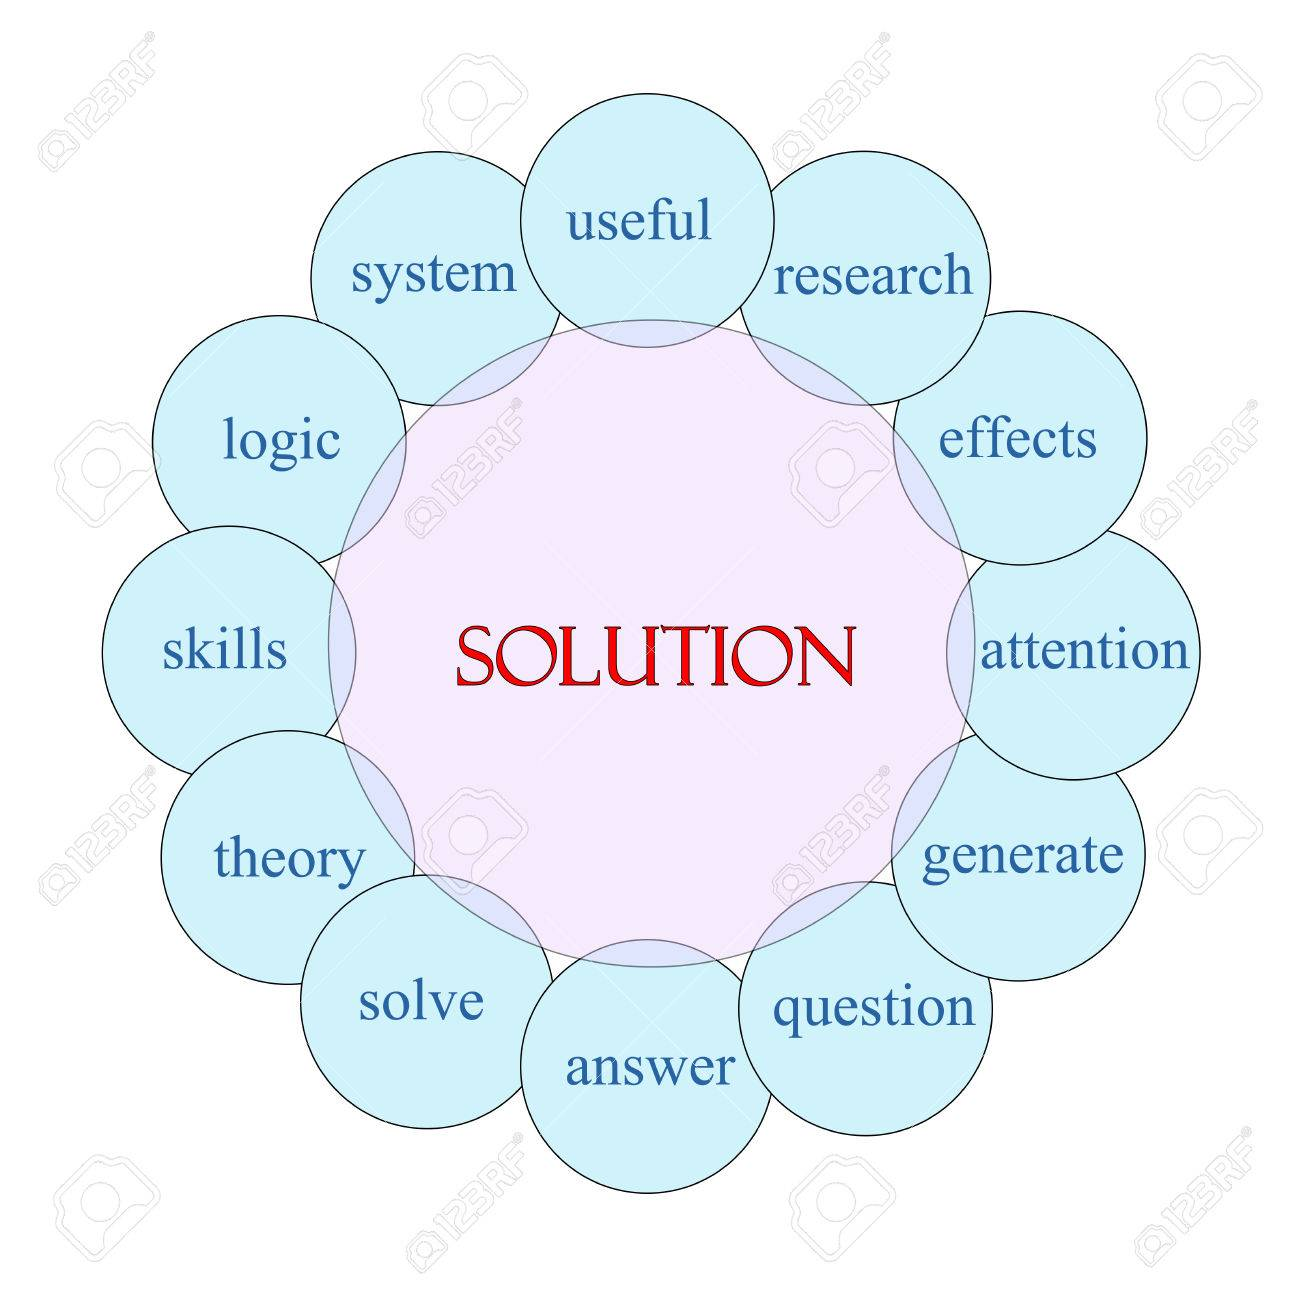 solution concept circular diagram in pink and blue with great terms such as  useful, research